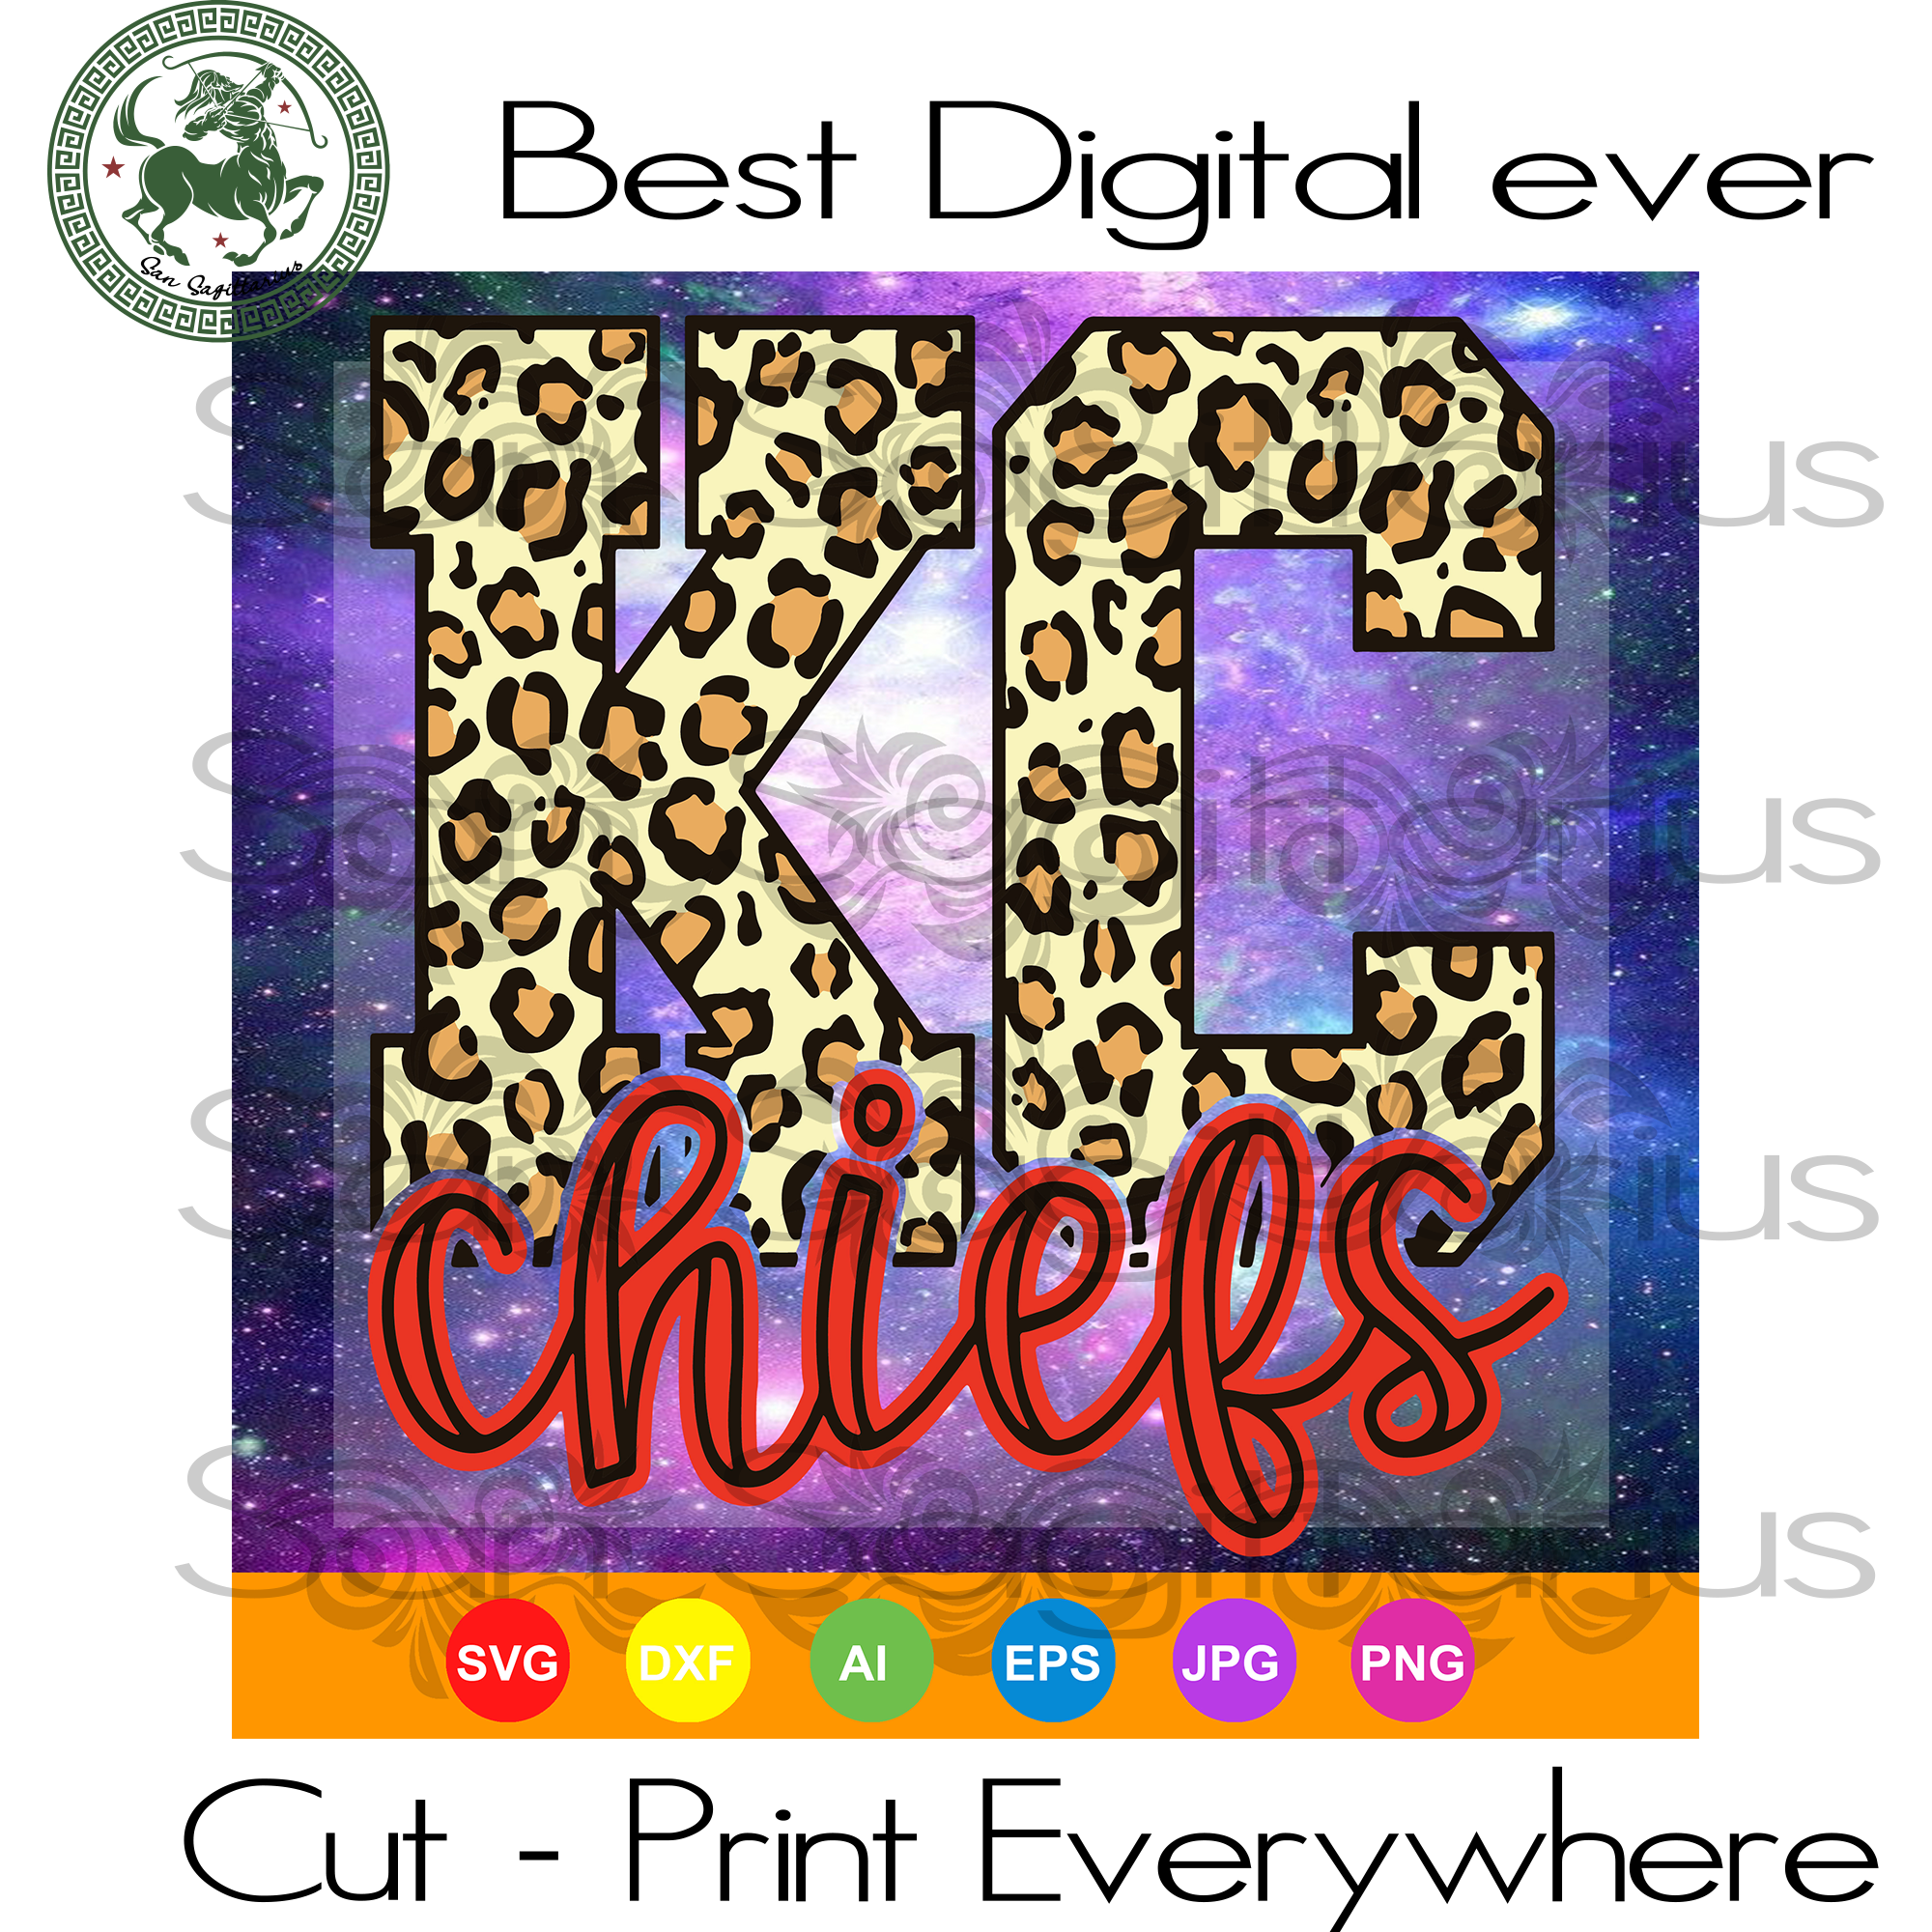 Kansas City Chiefs, Kansas City svg, Kansas city chiefs svg, nfl svg, nfl logo, kc chief svg, kc chief gifts, kc chief football,nfl football svg, mahomie shirt, mahomies svg, mahomies t- shir